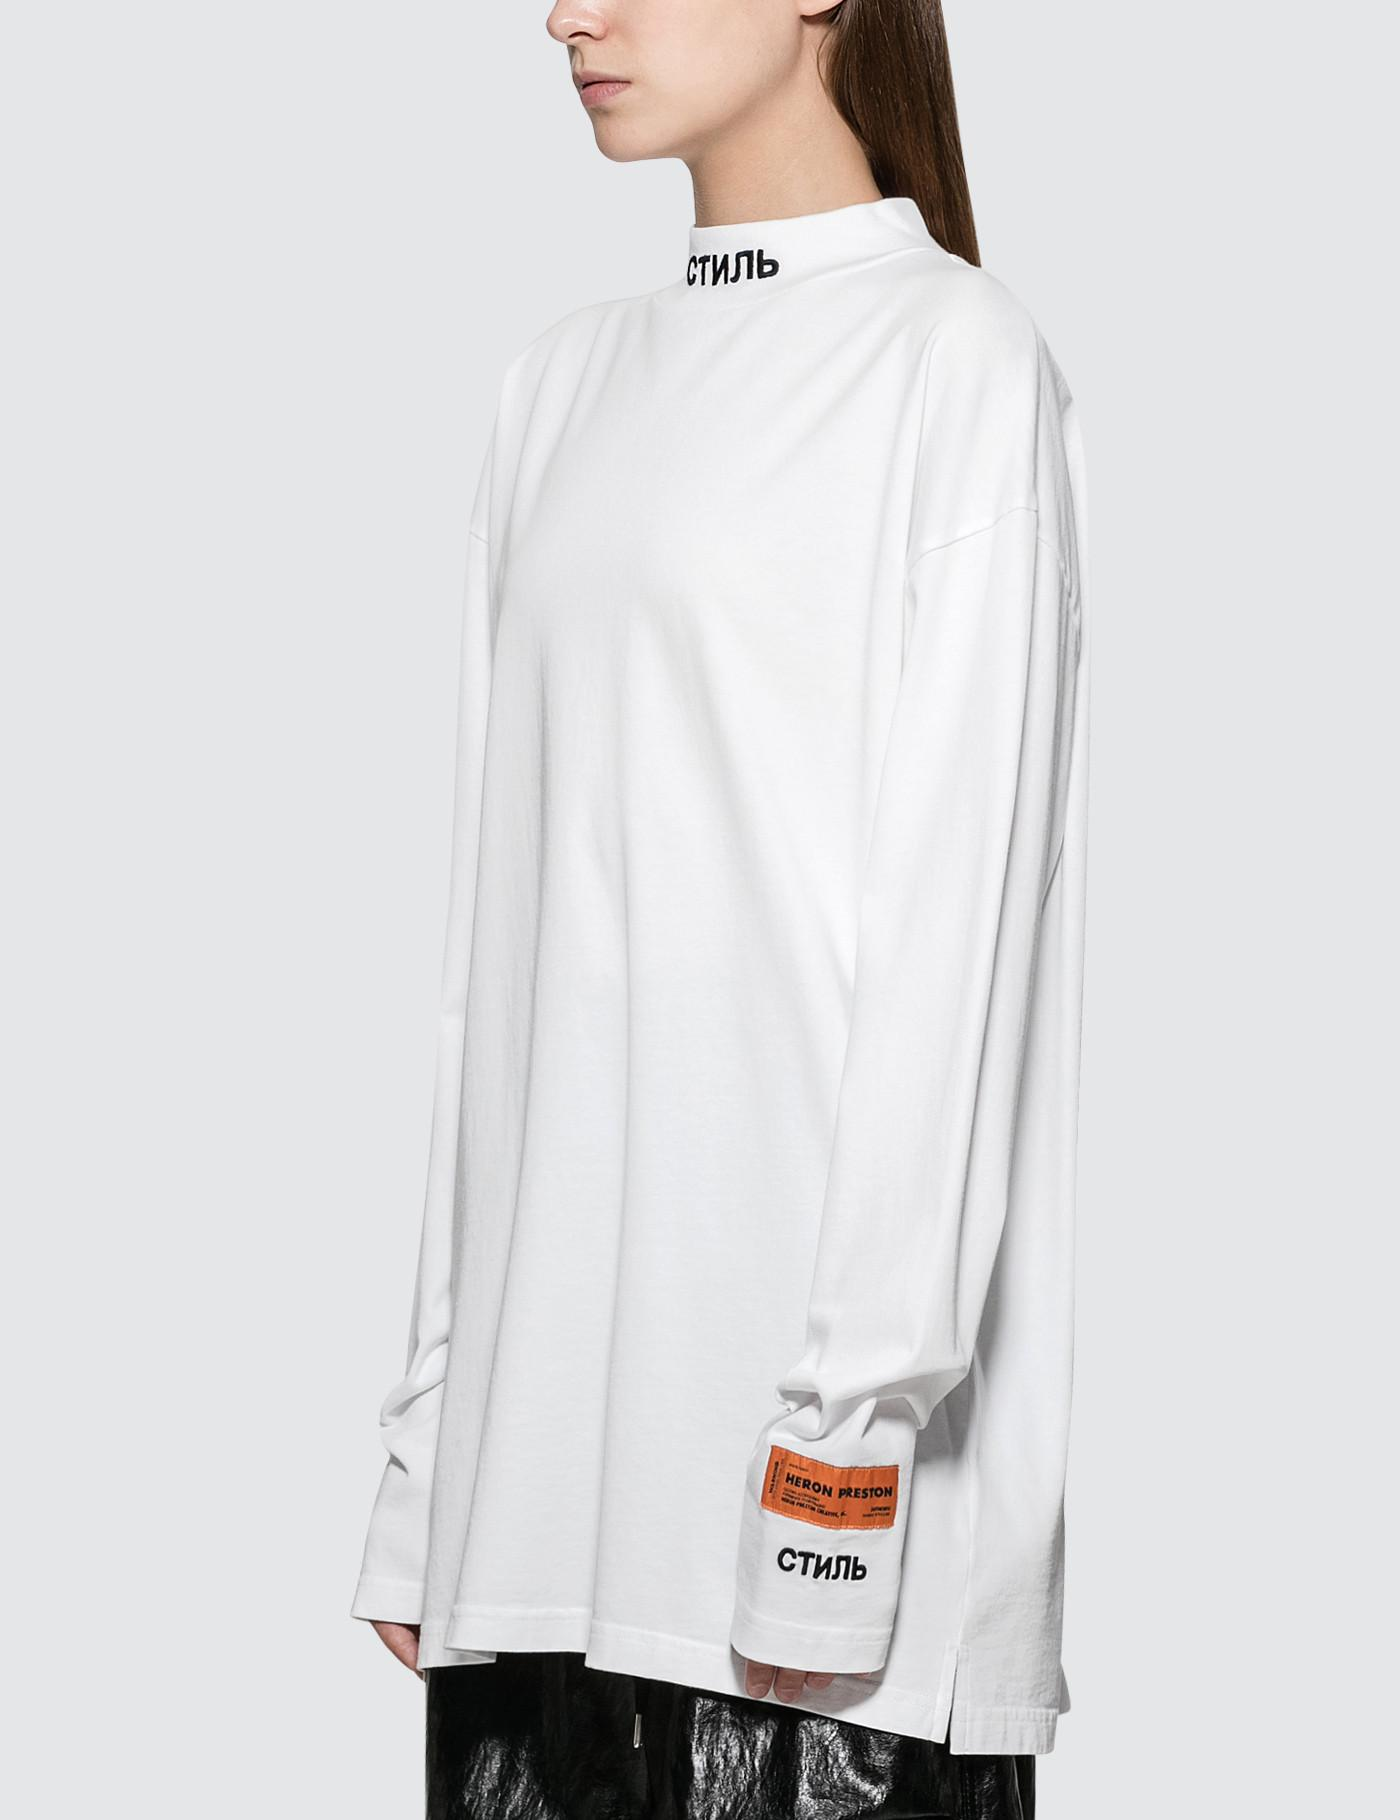 0b5297c450f Heron Preston Ctnmb Turtle-neck Long Sleeve T-shirt in White - Lyst